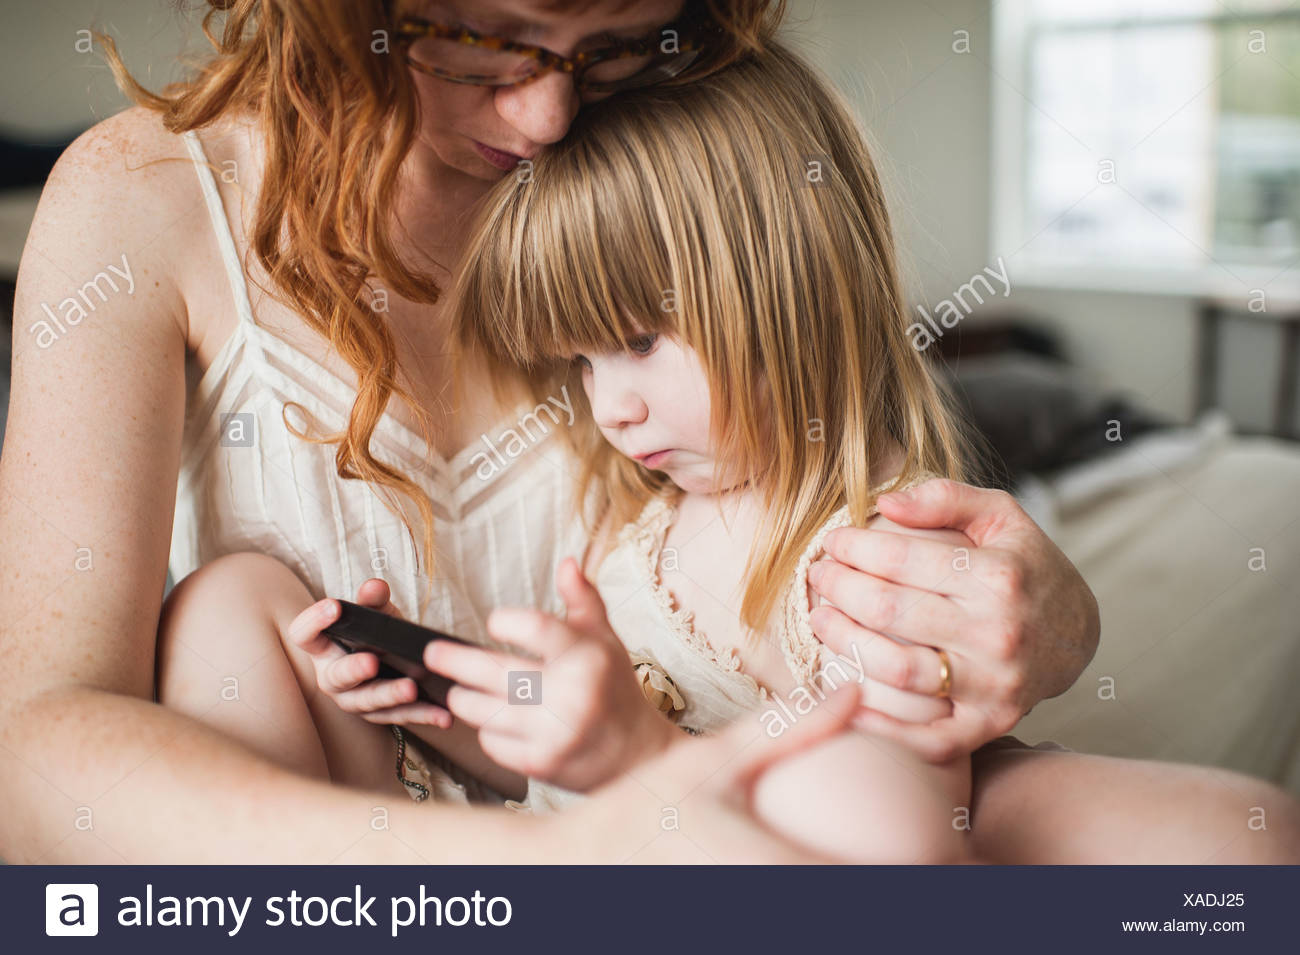 Mother and Daughter, using smartphone Photo Stock